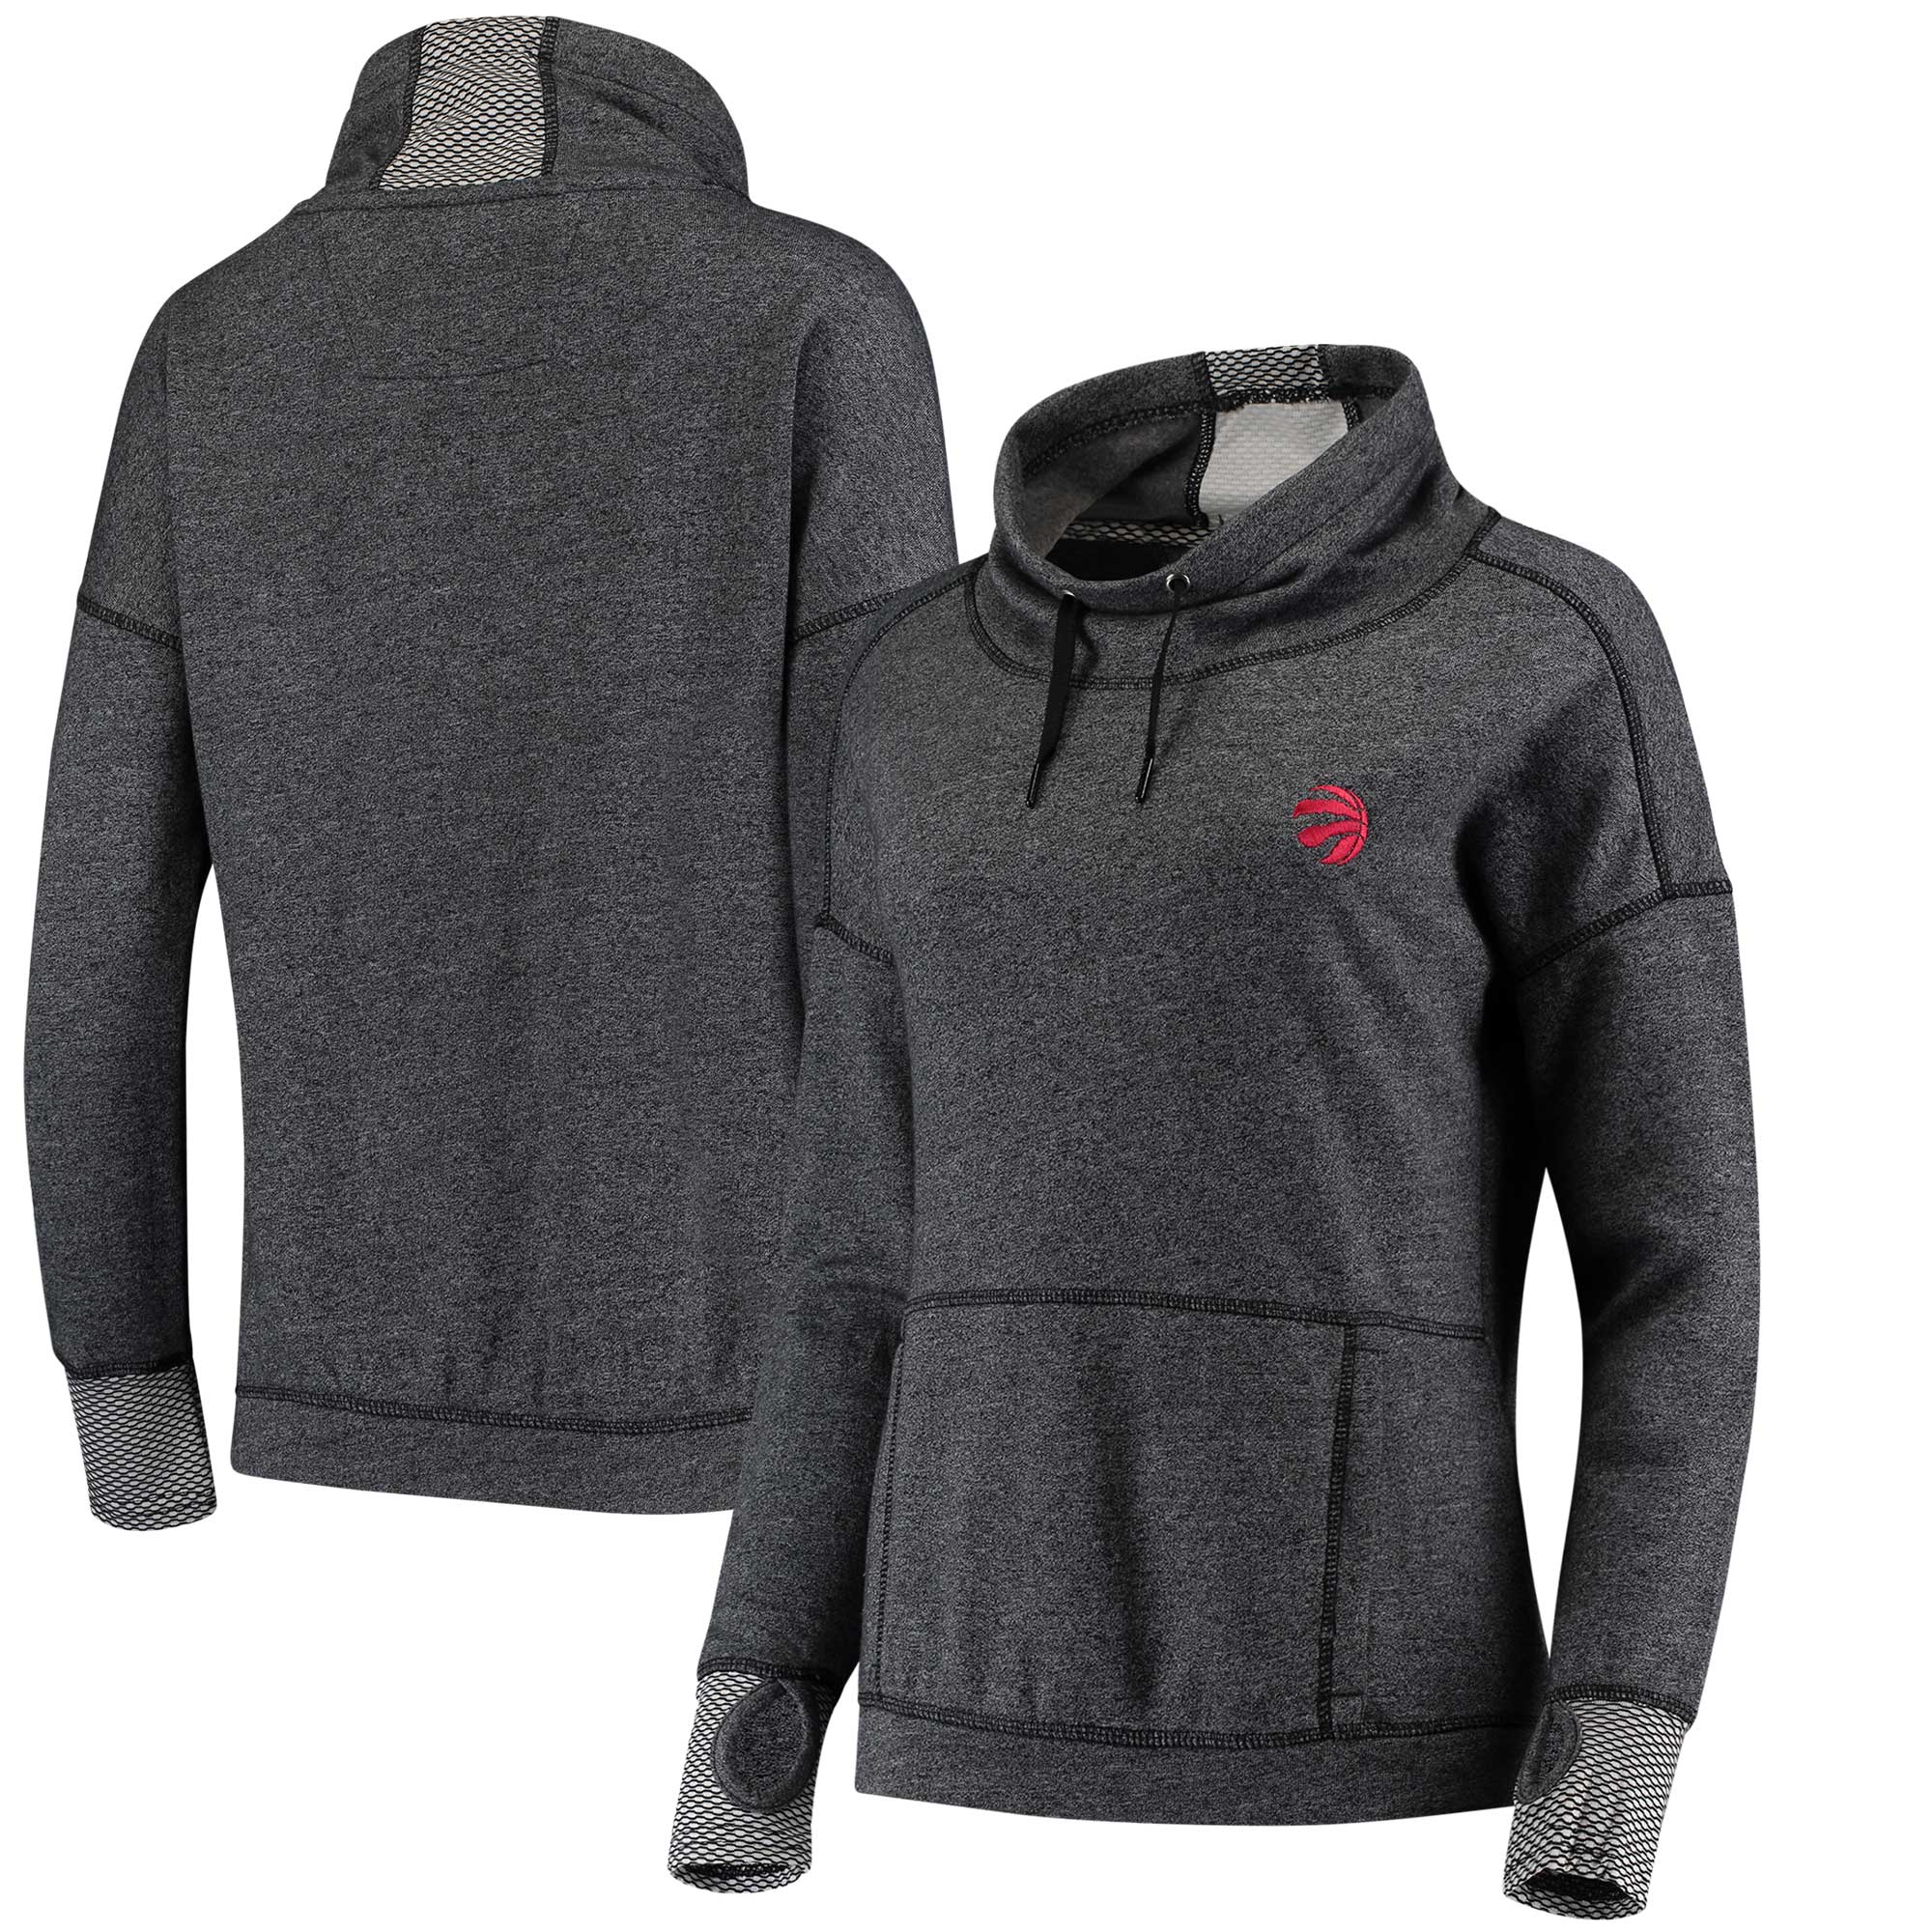 Toronto Raptors Antigua Women's Snap Cowl Neck Pullover Sweatshirt - Heathered Black